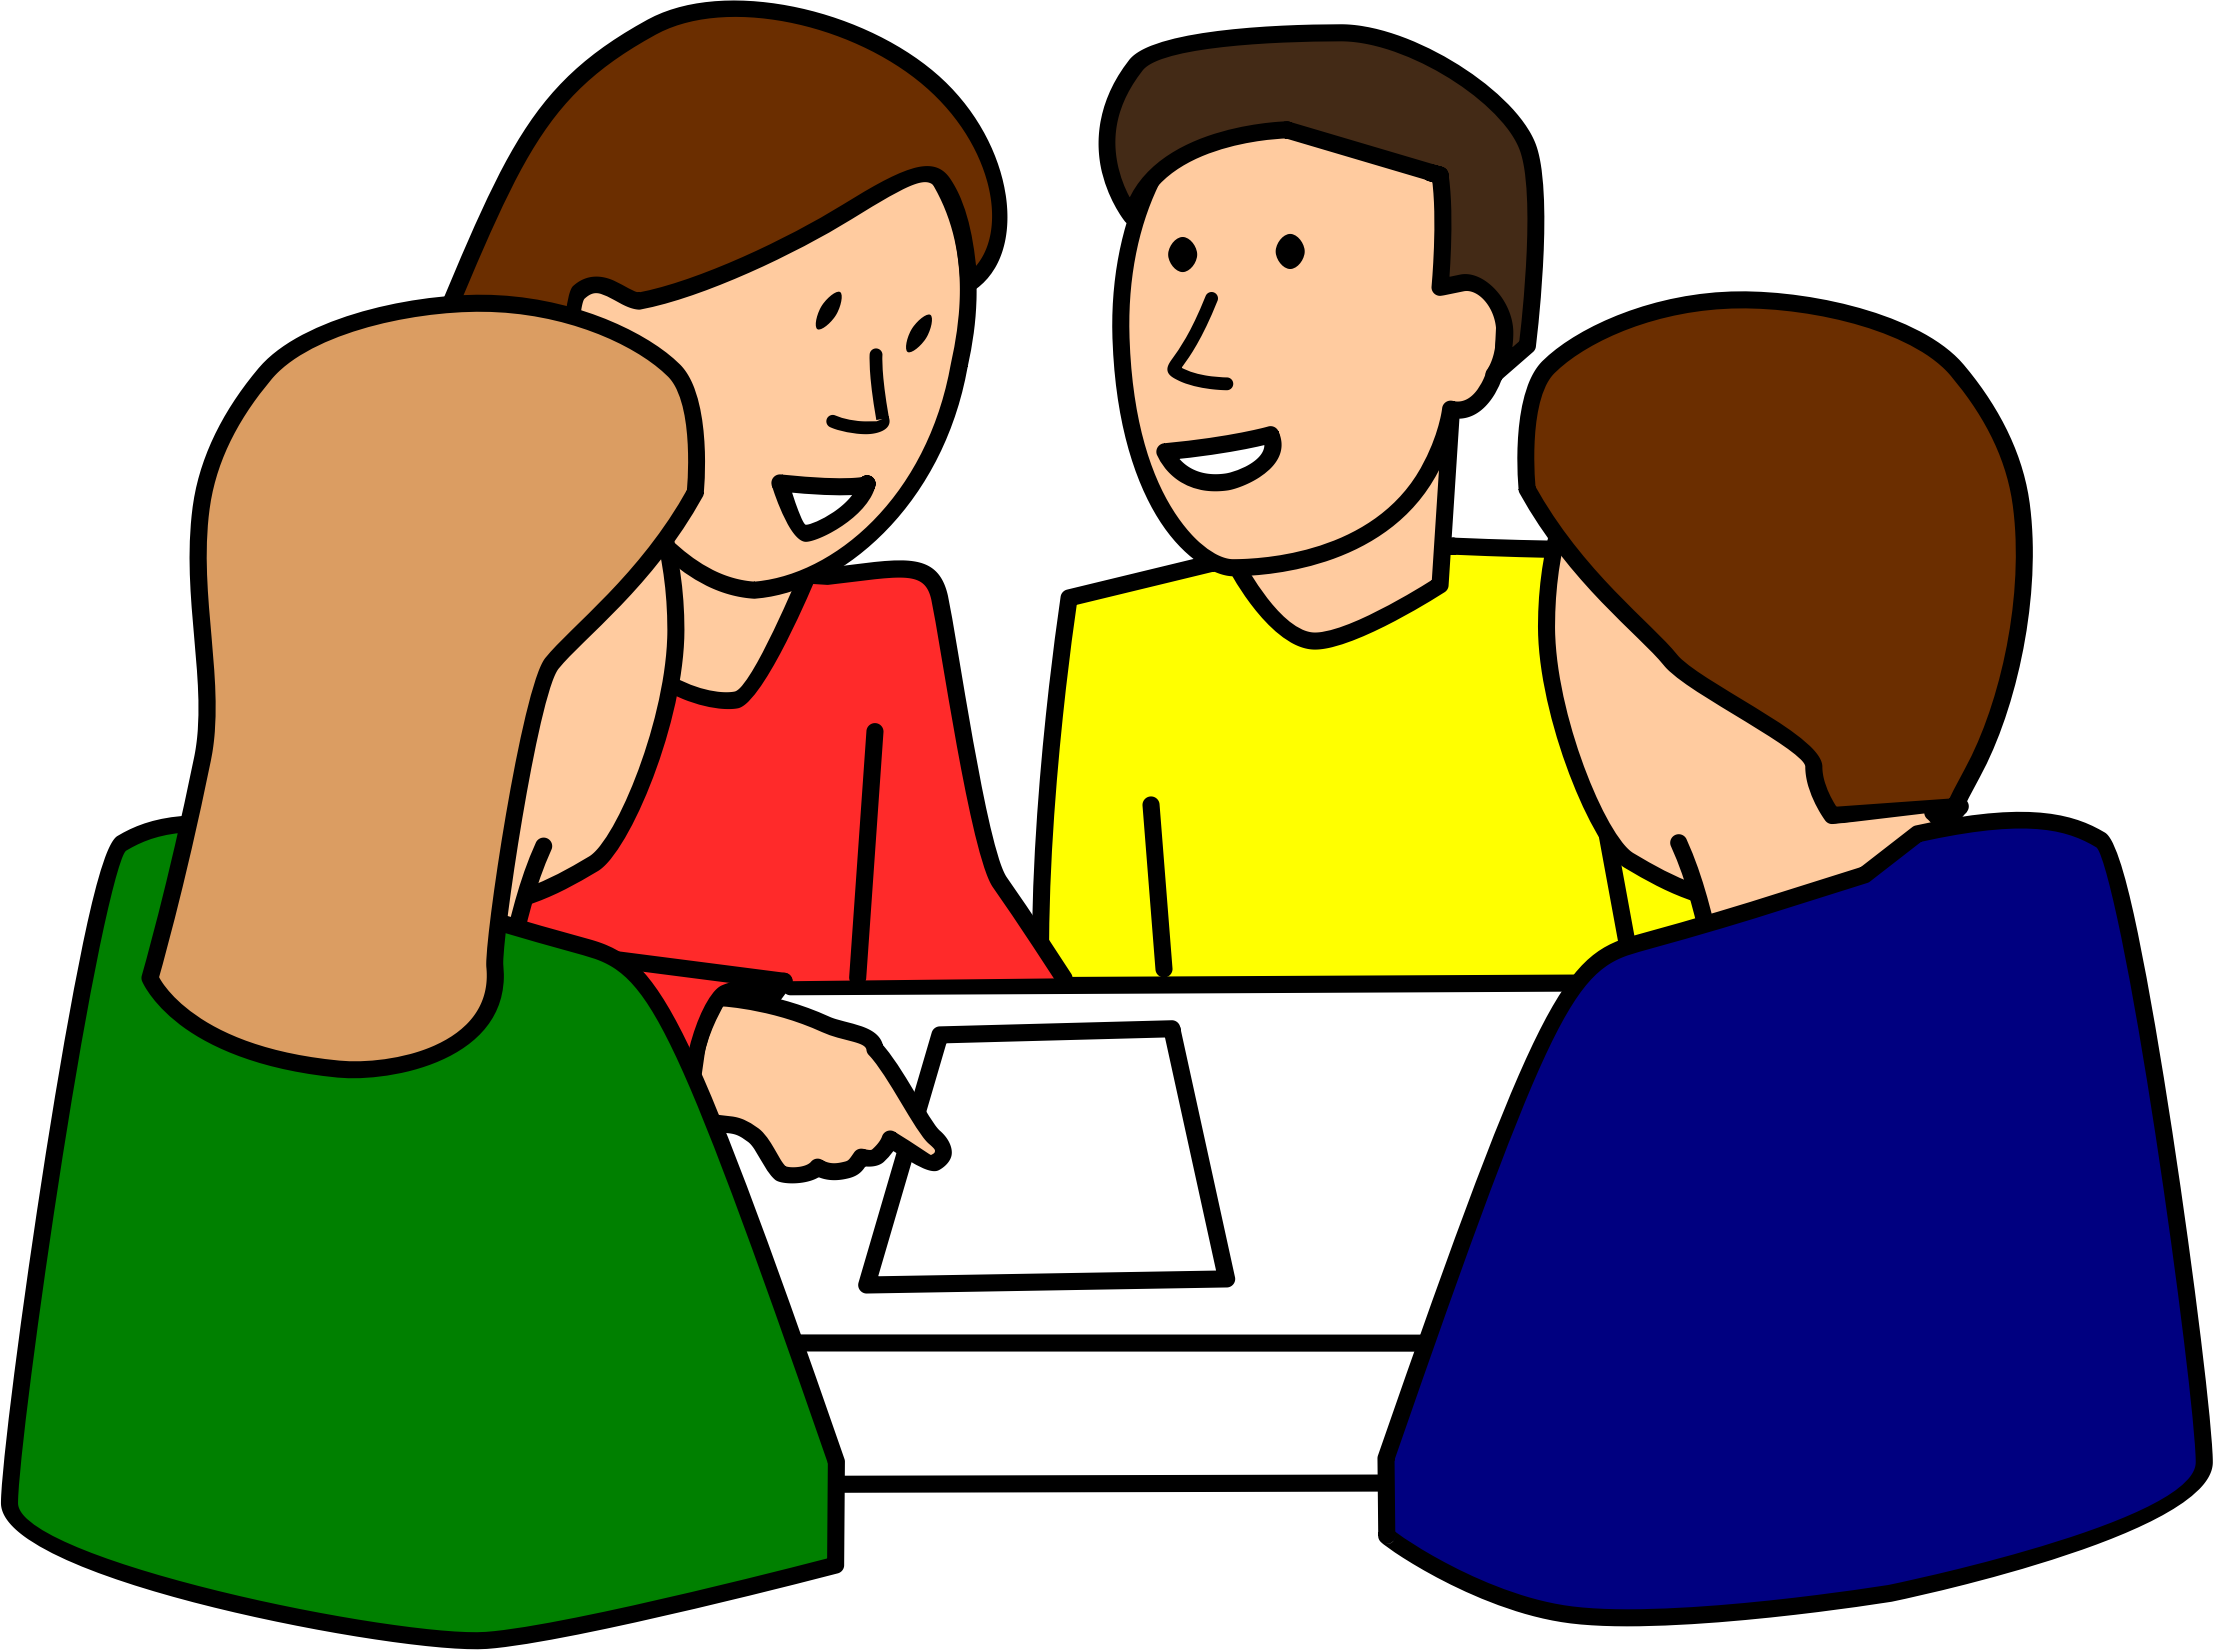 Conversation clipart structure kagan. Students group work by